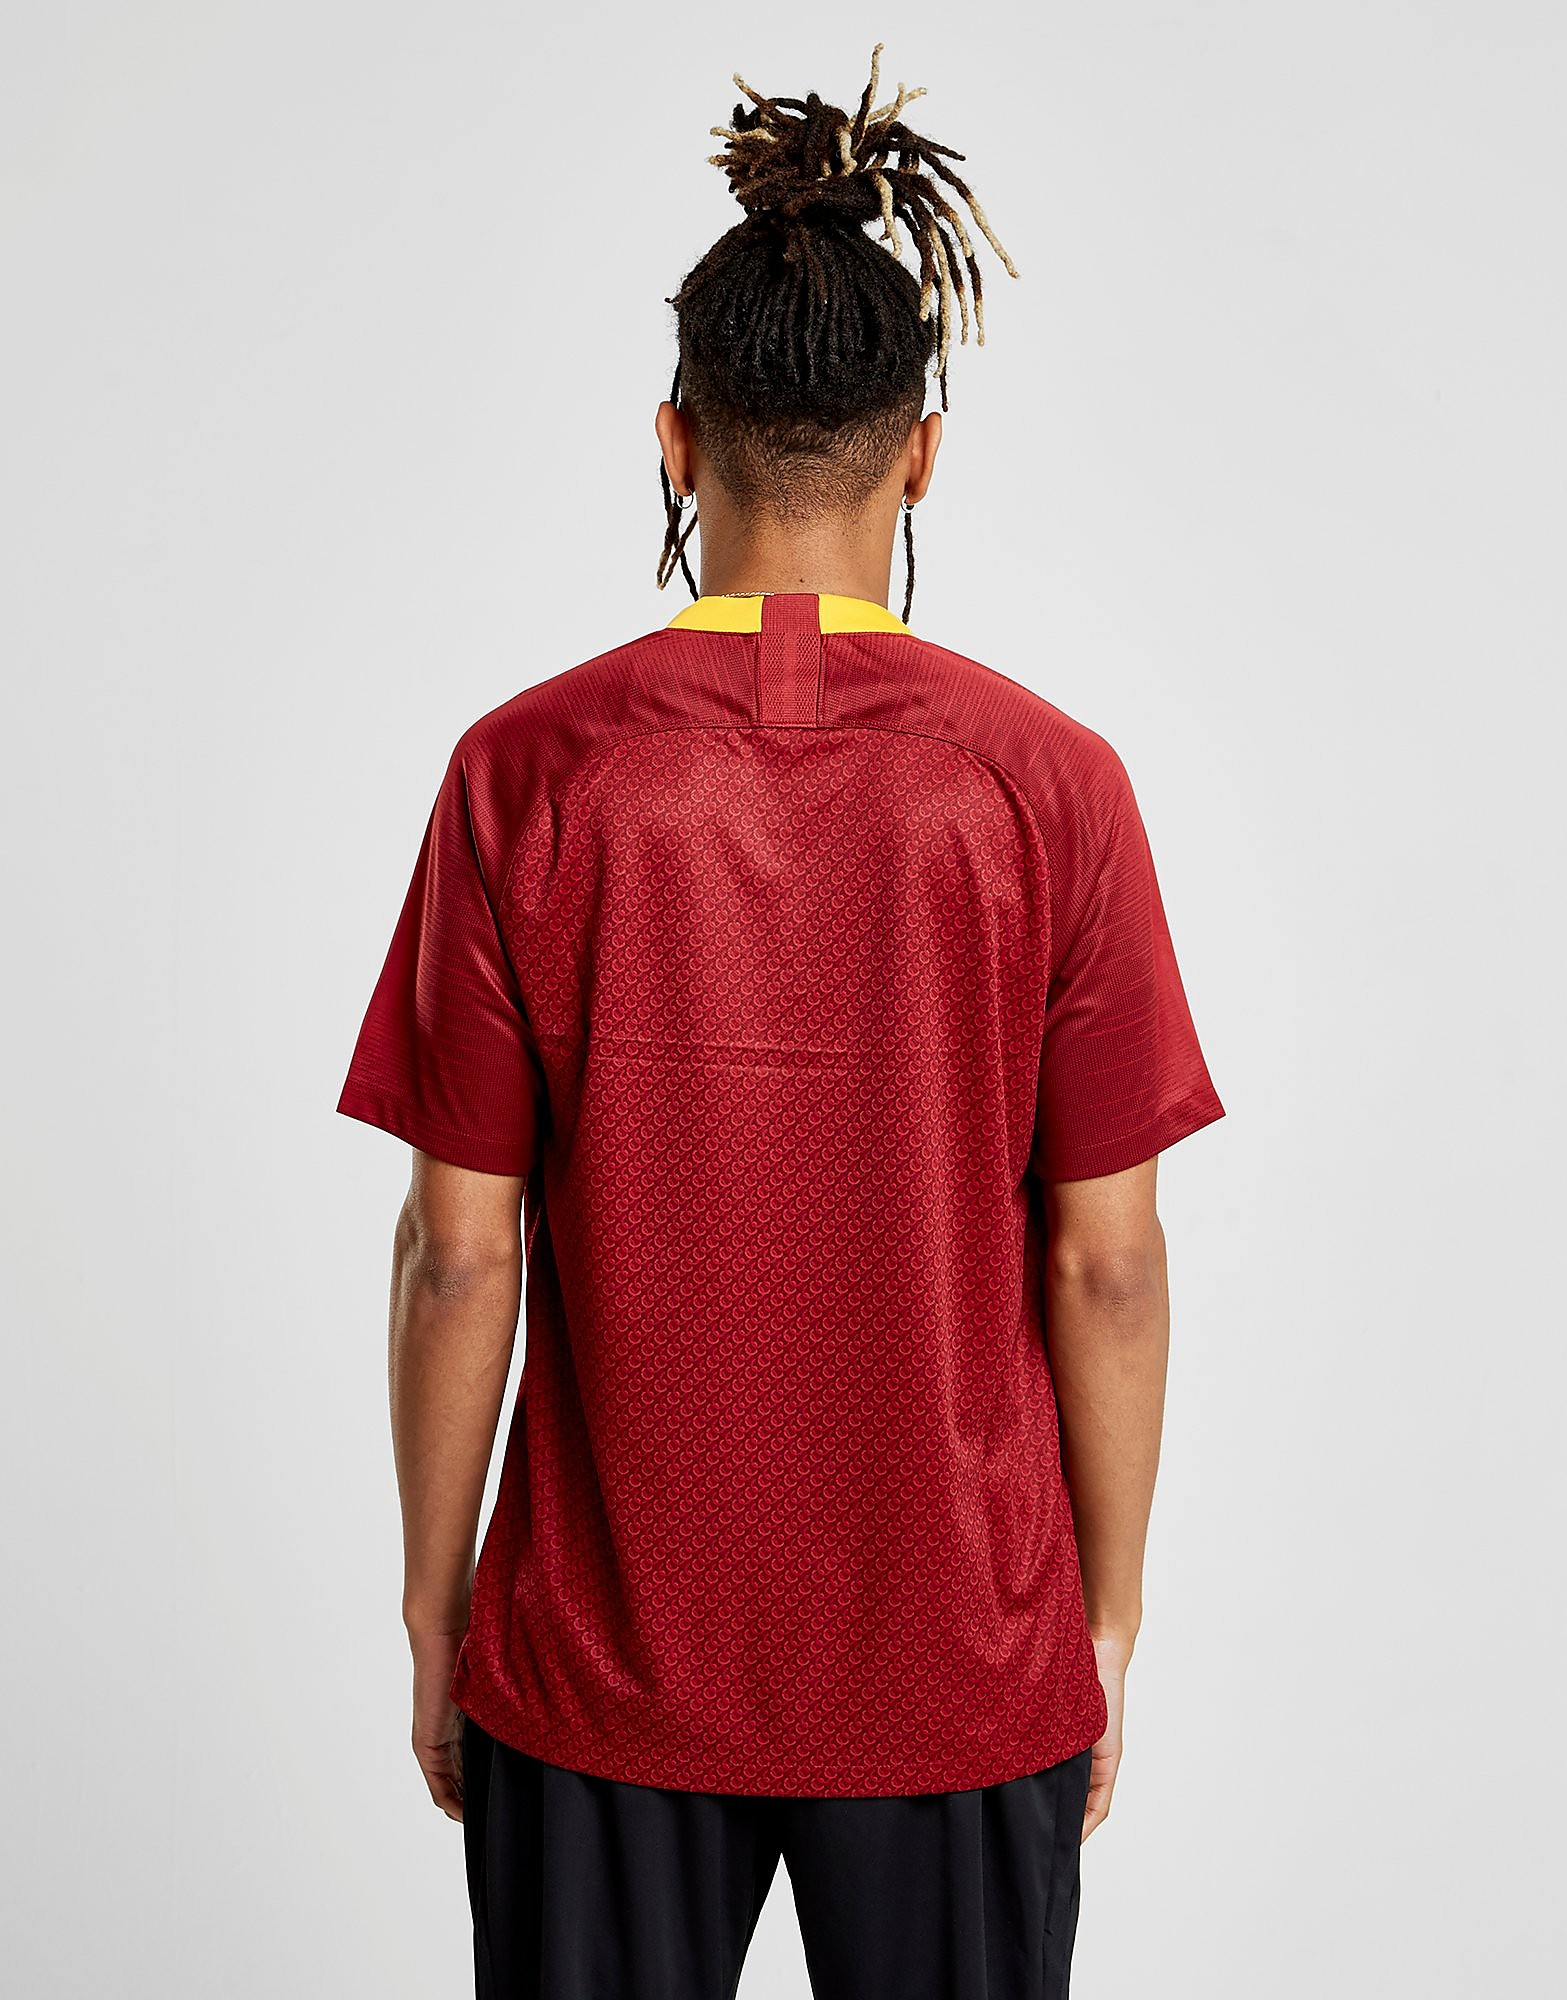 Nike AS Roma 2018/19 Home Shirt